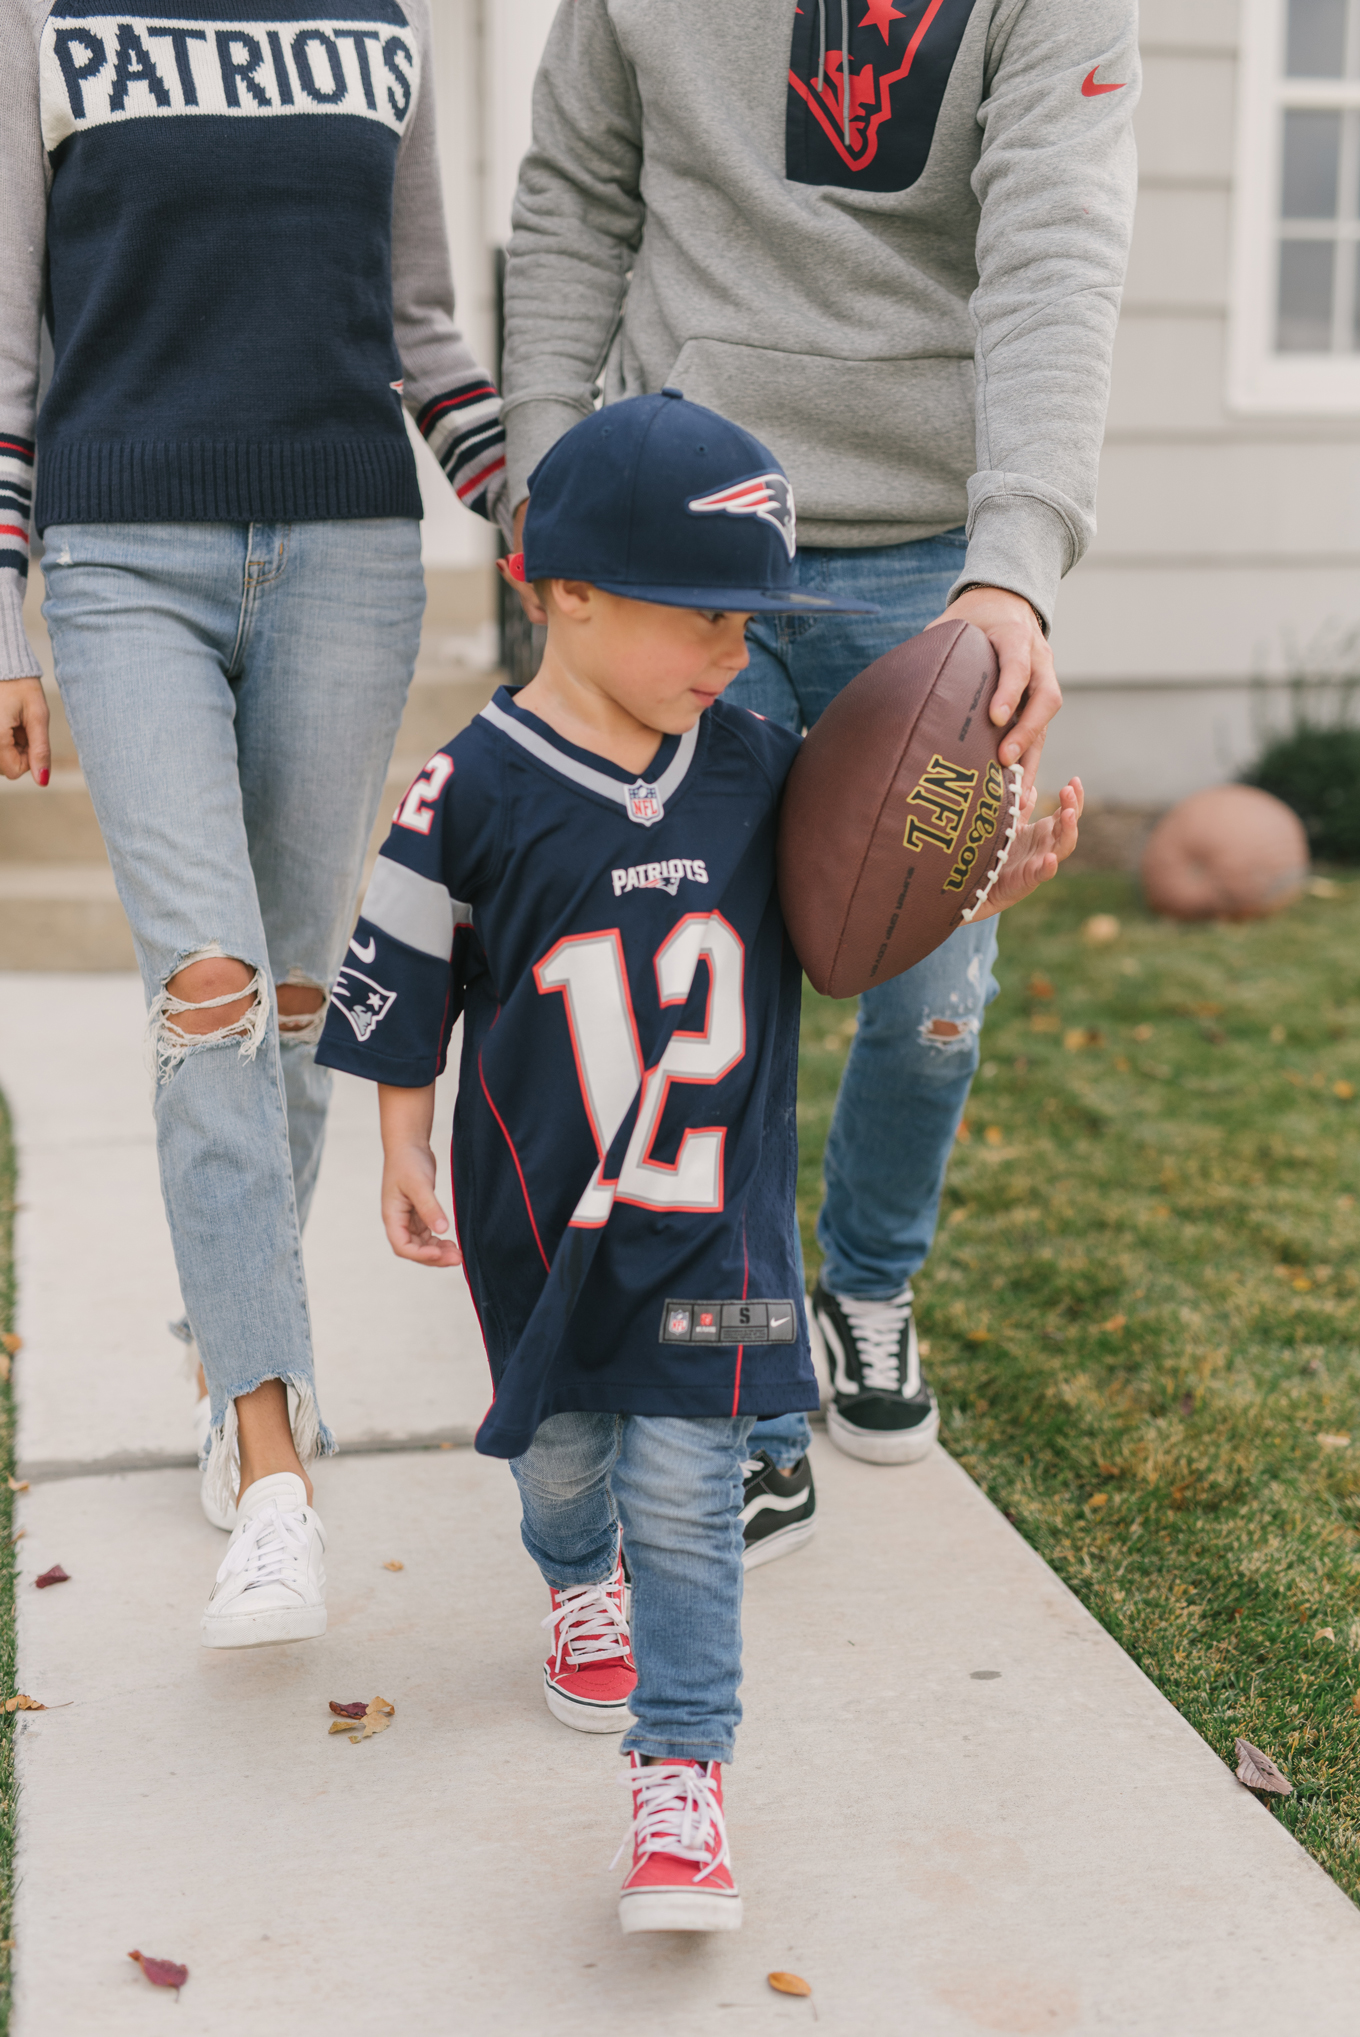 new england patriots family outfits